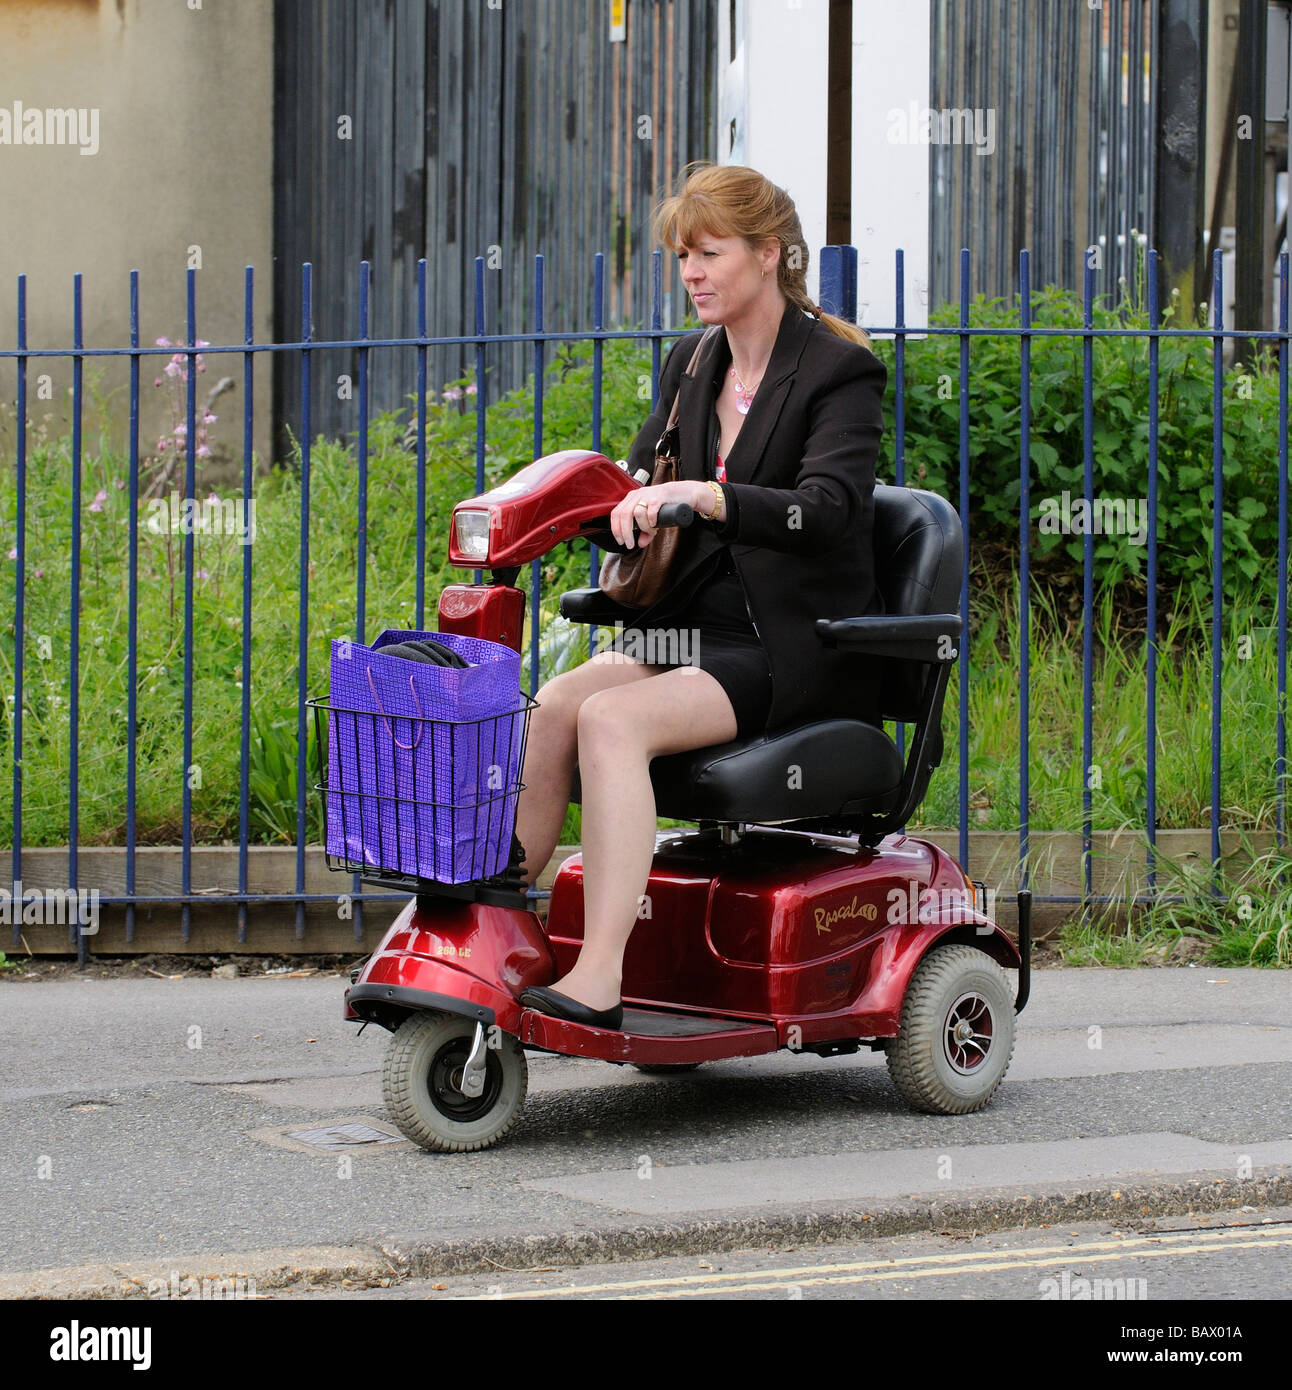 Woman seated on a Rascal mobility scooter driving along the pavement - Stock Image  sc 1 st  Alamy & Rascal Scooter Stock Photos u0026 Rascal Scooter Stock Images - Alamy